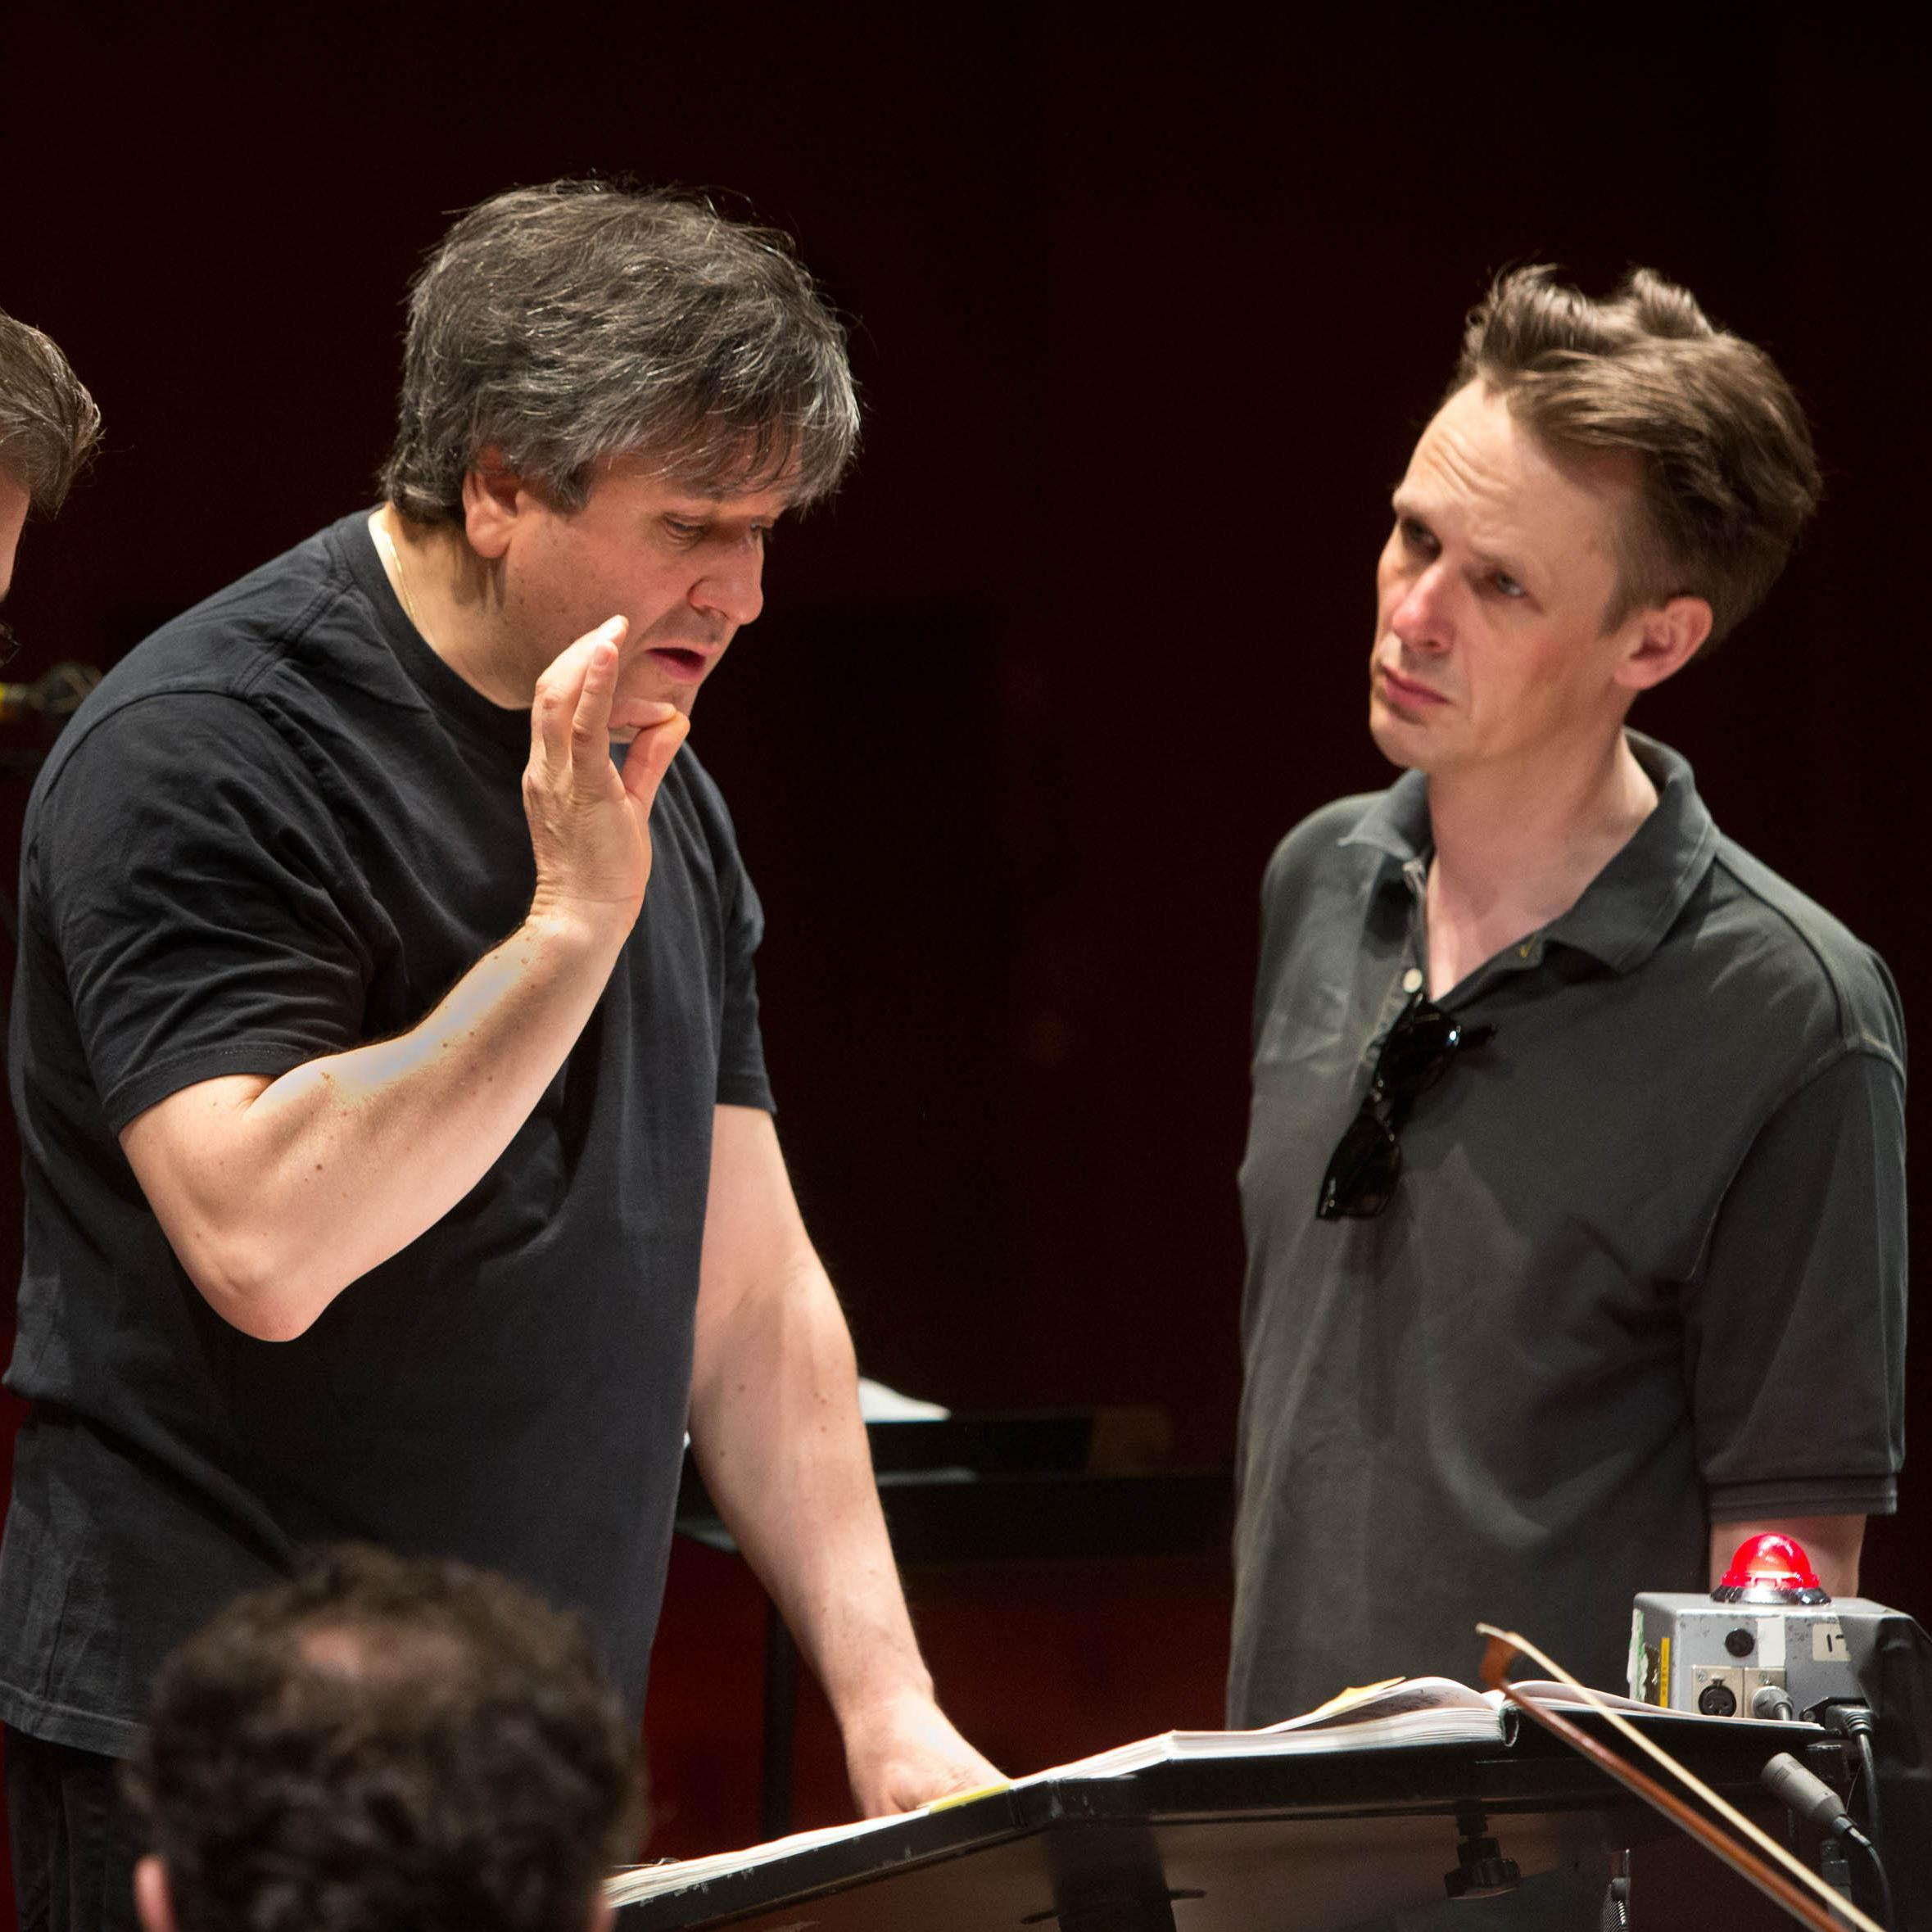 Baritone Thomas Hampson (left), conductor Antonio Pappano (center) and tenor Ian Bostridge pay tribute to composer Benjamin Britten in a new recording of the War Requiem, which comes out Nov. 19.